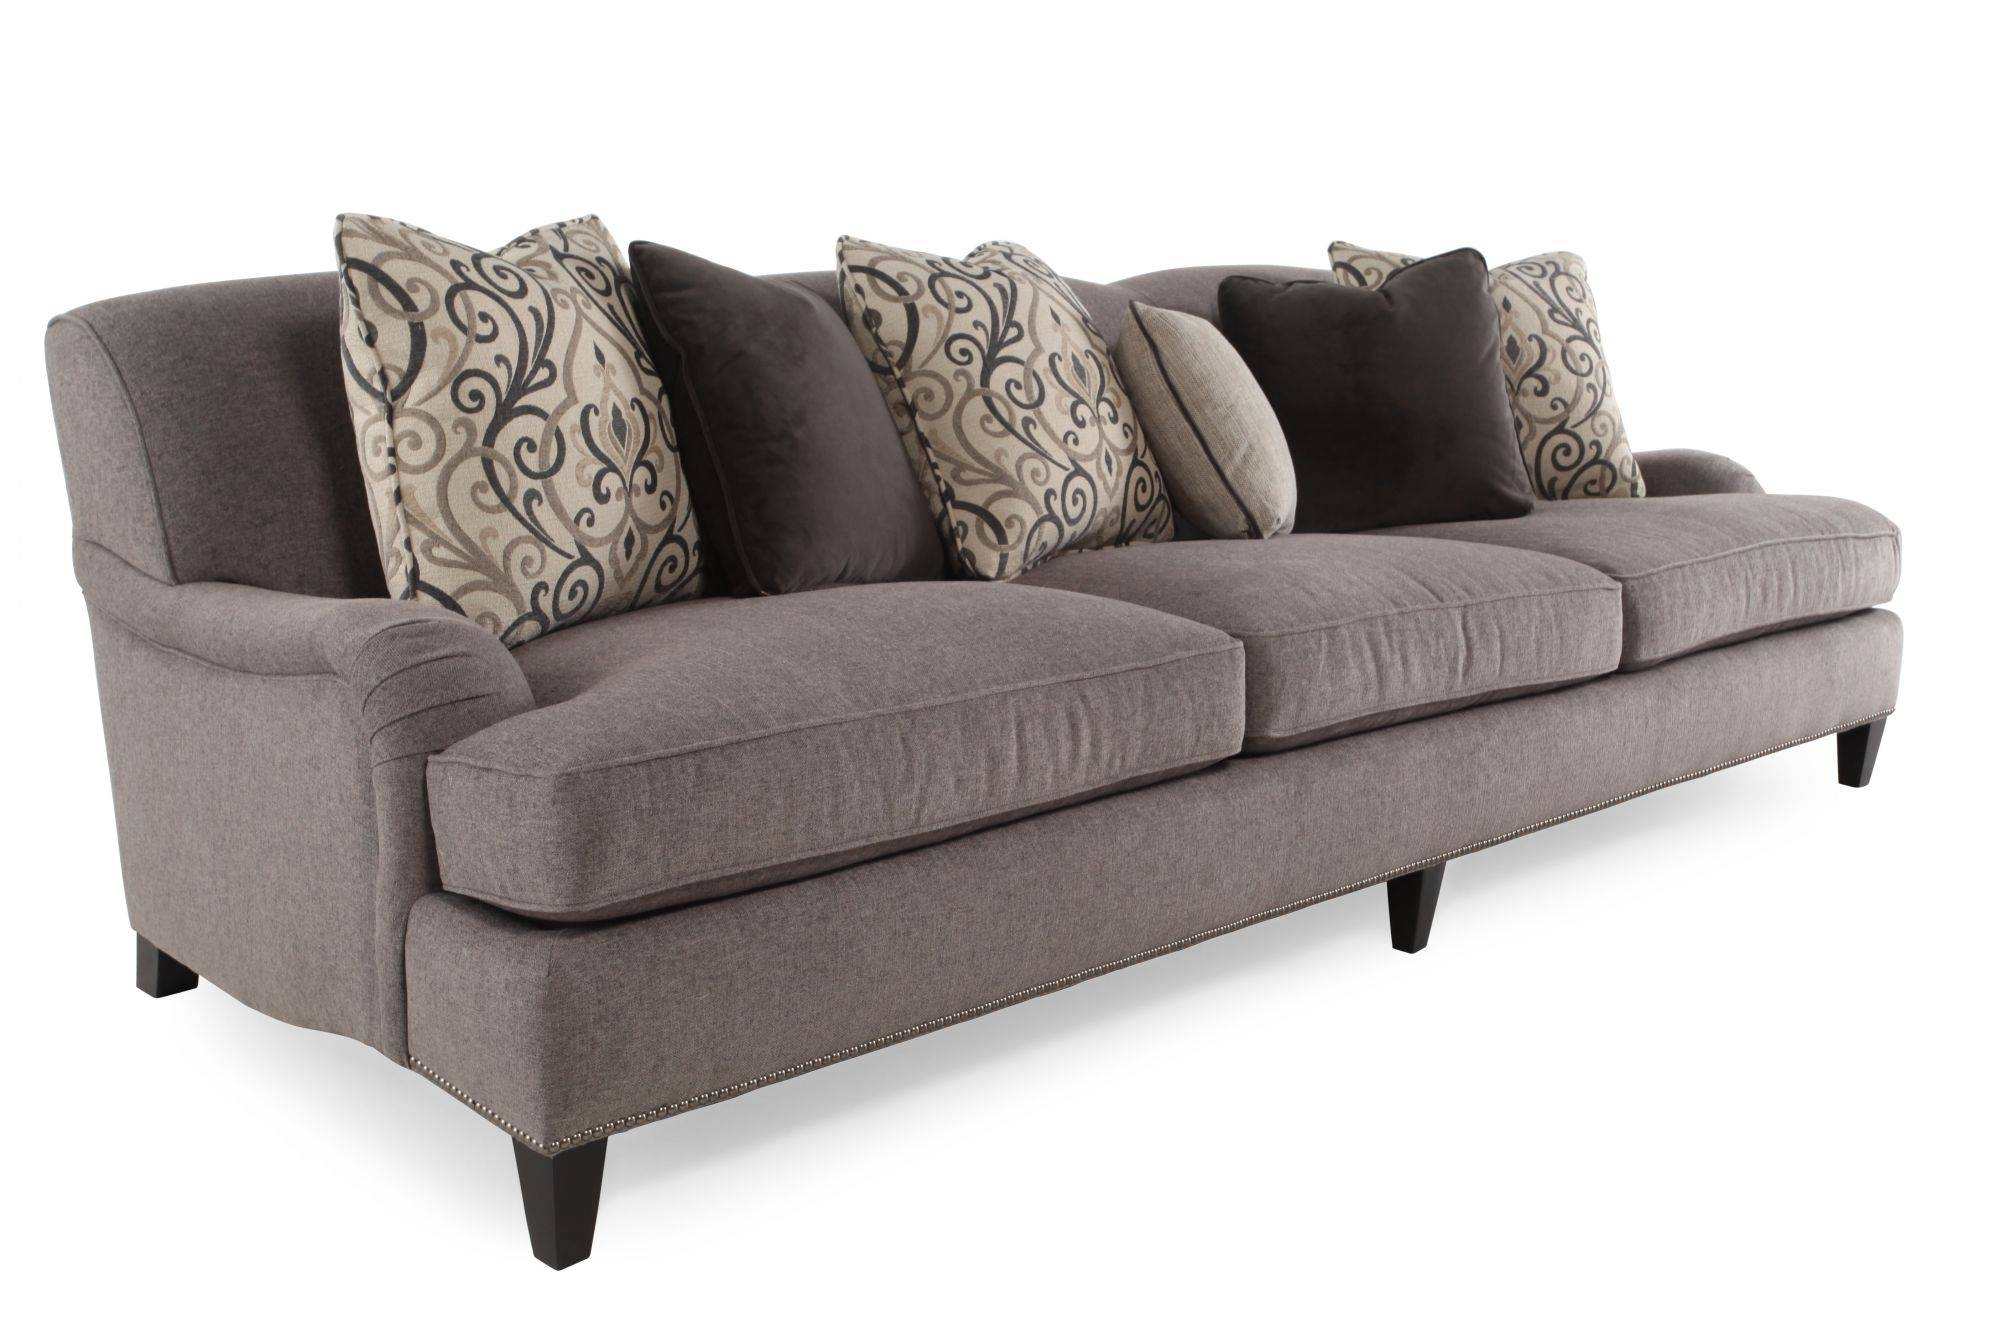 Furniture: Bernhardt Leather Sofa | Discount Bernhardt Furniture pertaining to Bernhardt Sofas (Image 3 of 15)